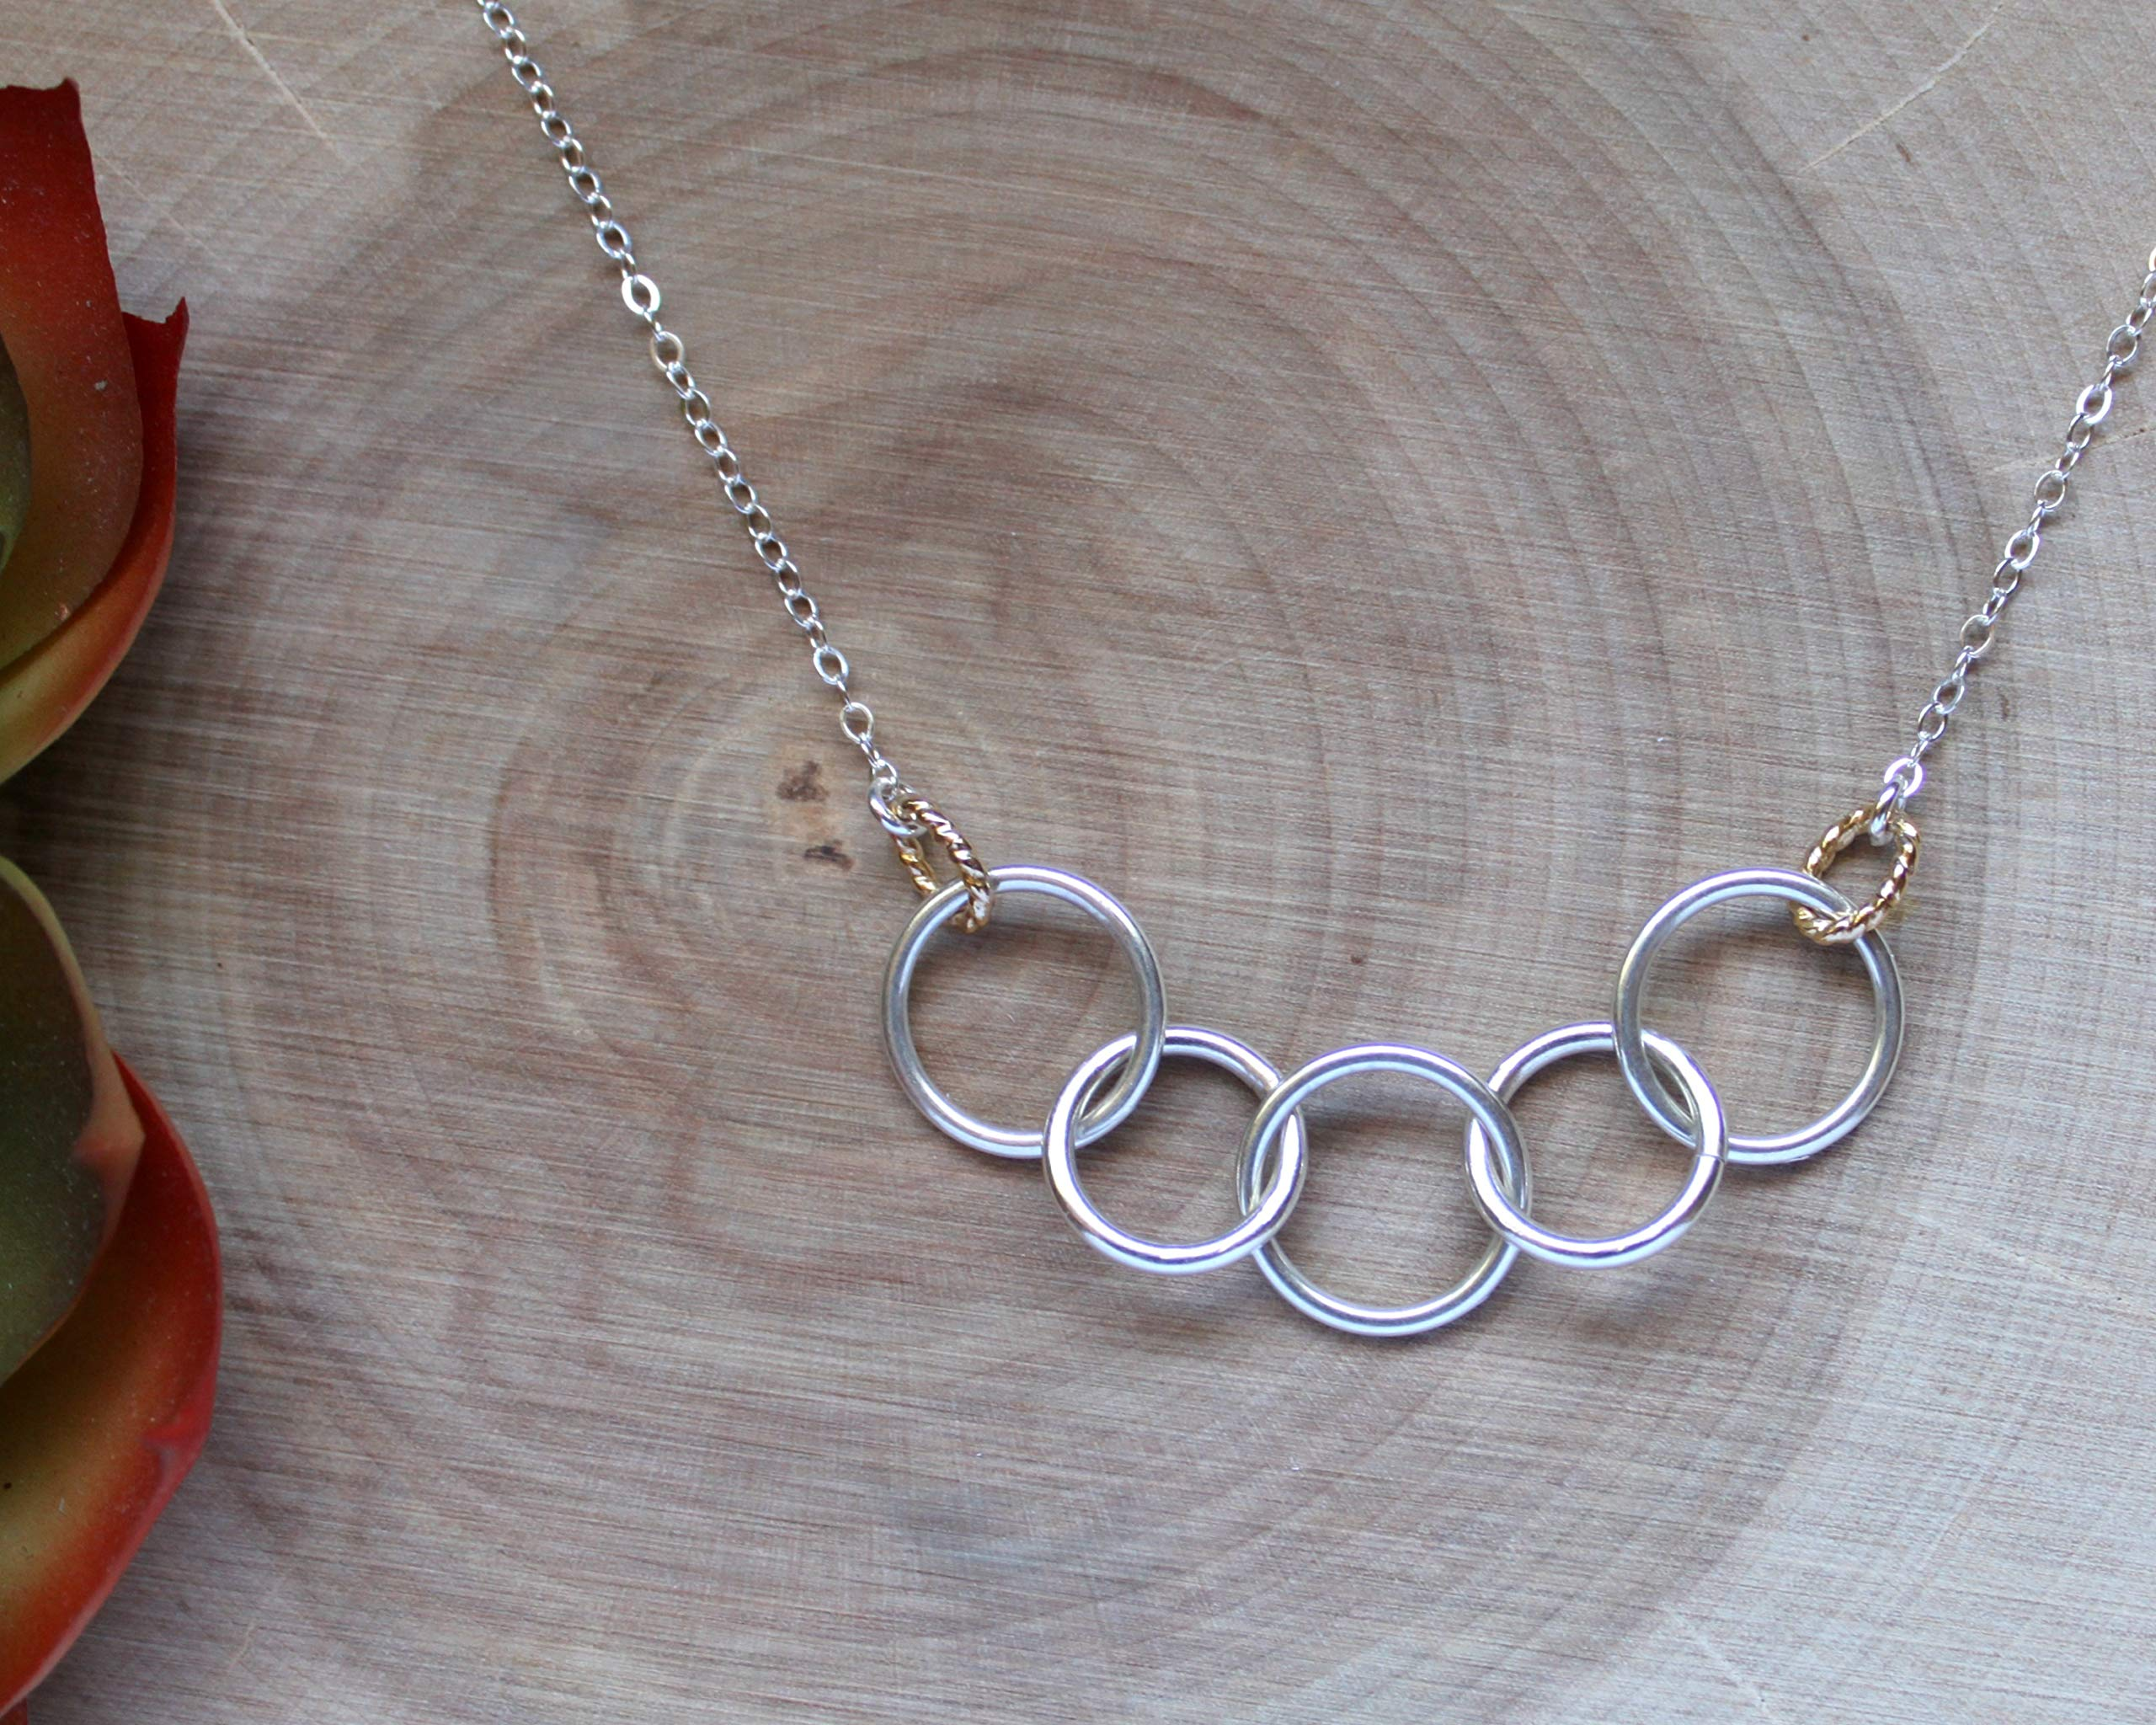 Efy Tal Jewelry Happy 50th Birthday Gifts for Women Necklace, Sterling Silver 5 Rings Five Decades Necklaces Gift Ideas by Efy Tal Jewelry (Image #3)